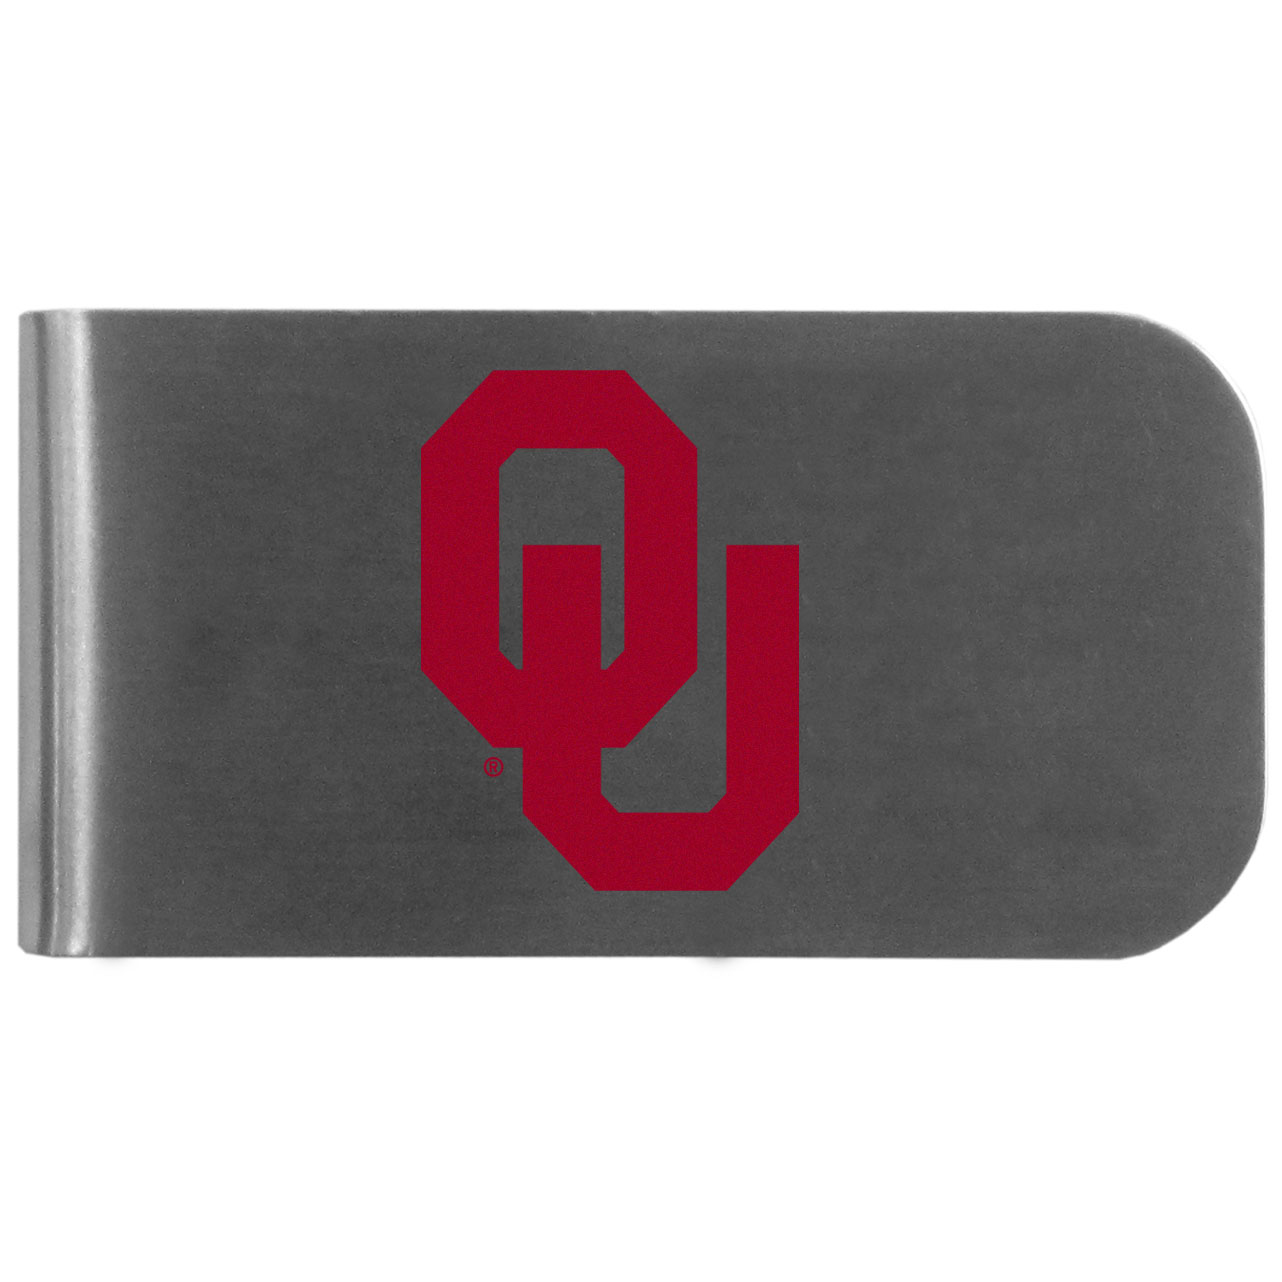 Oklahoma Sooners Logo Bottle Opener Money Clip - This unique money clip features a classic, brushed-metal finish with a handy bottle opener feature on the back. The clip has the Oklahoma Sooners logo expertly printed on the front of the clip.